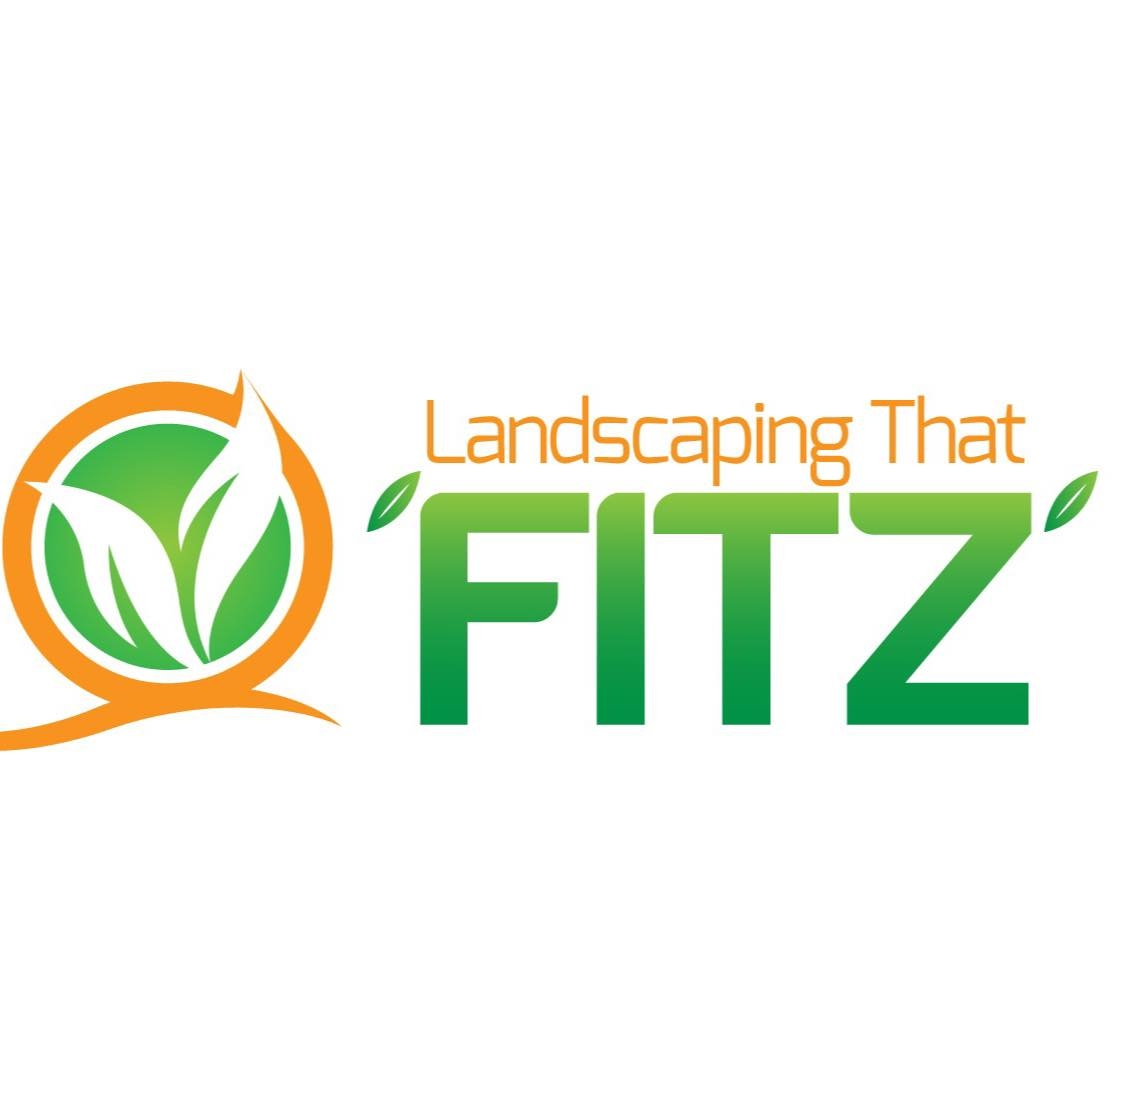 Landscaping That FITZ image